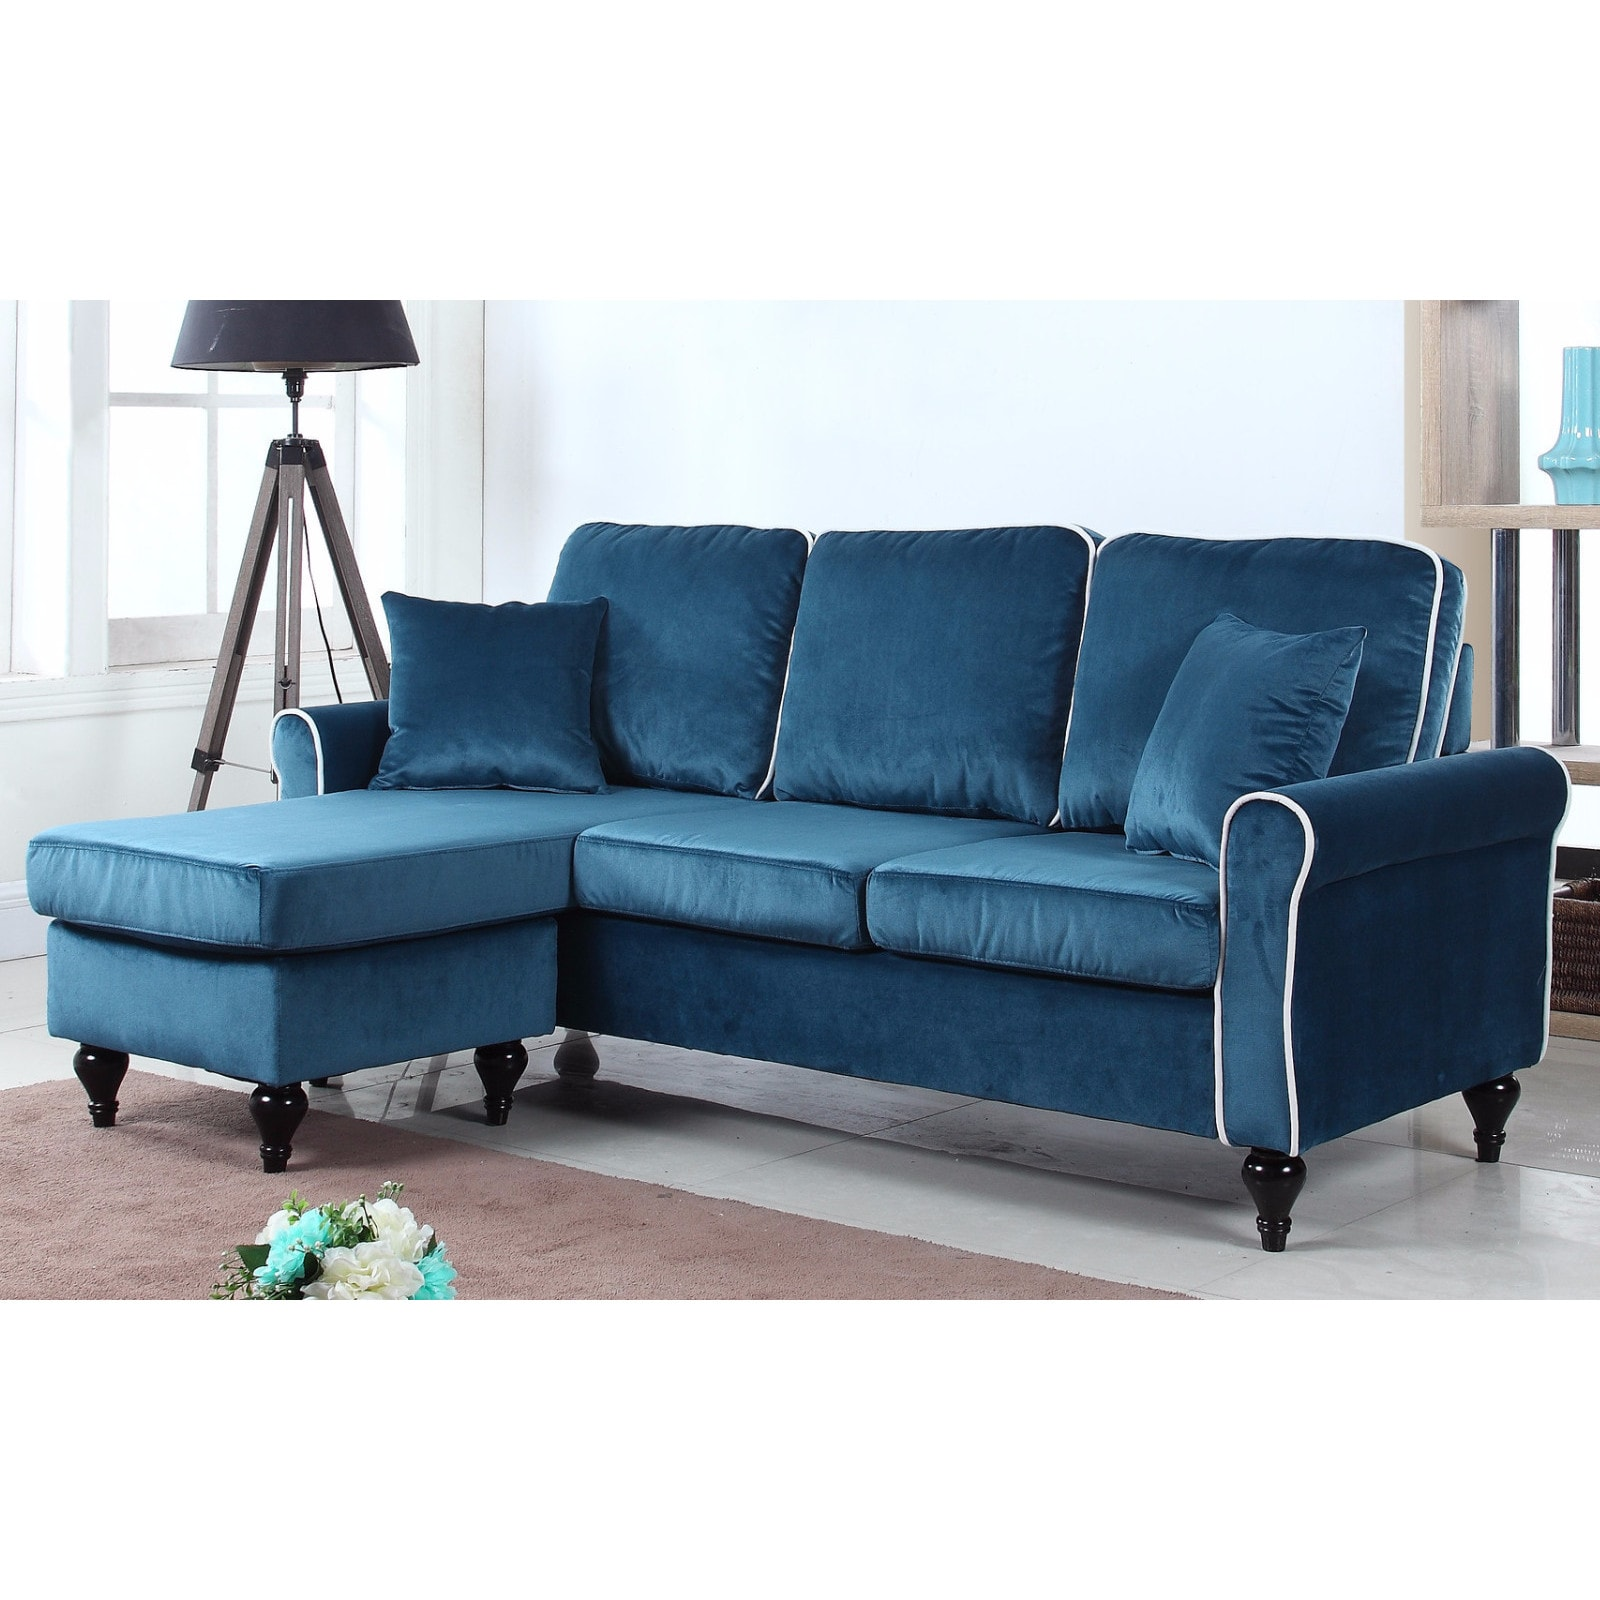 Shop traditional small space velvet sectional sofa with reversible chaise free shipping today overstock com 13190443